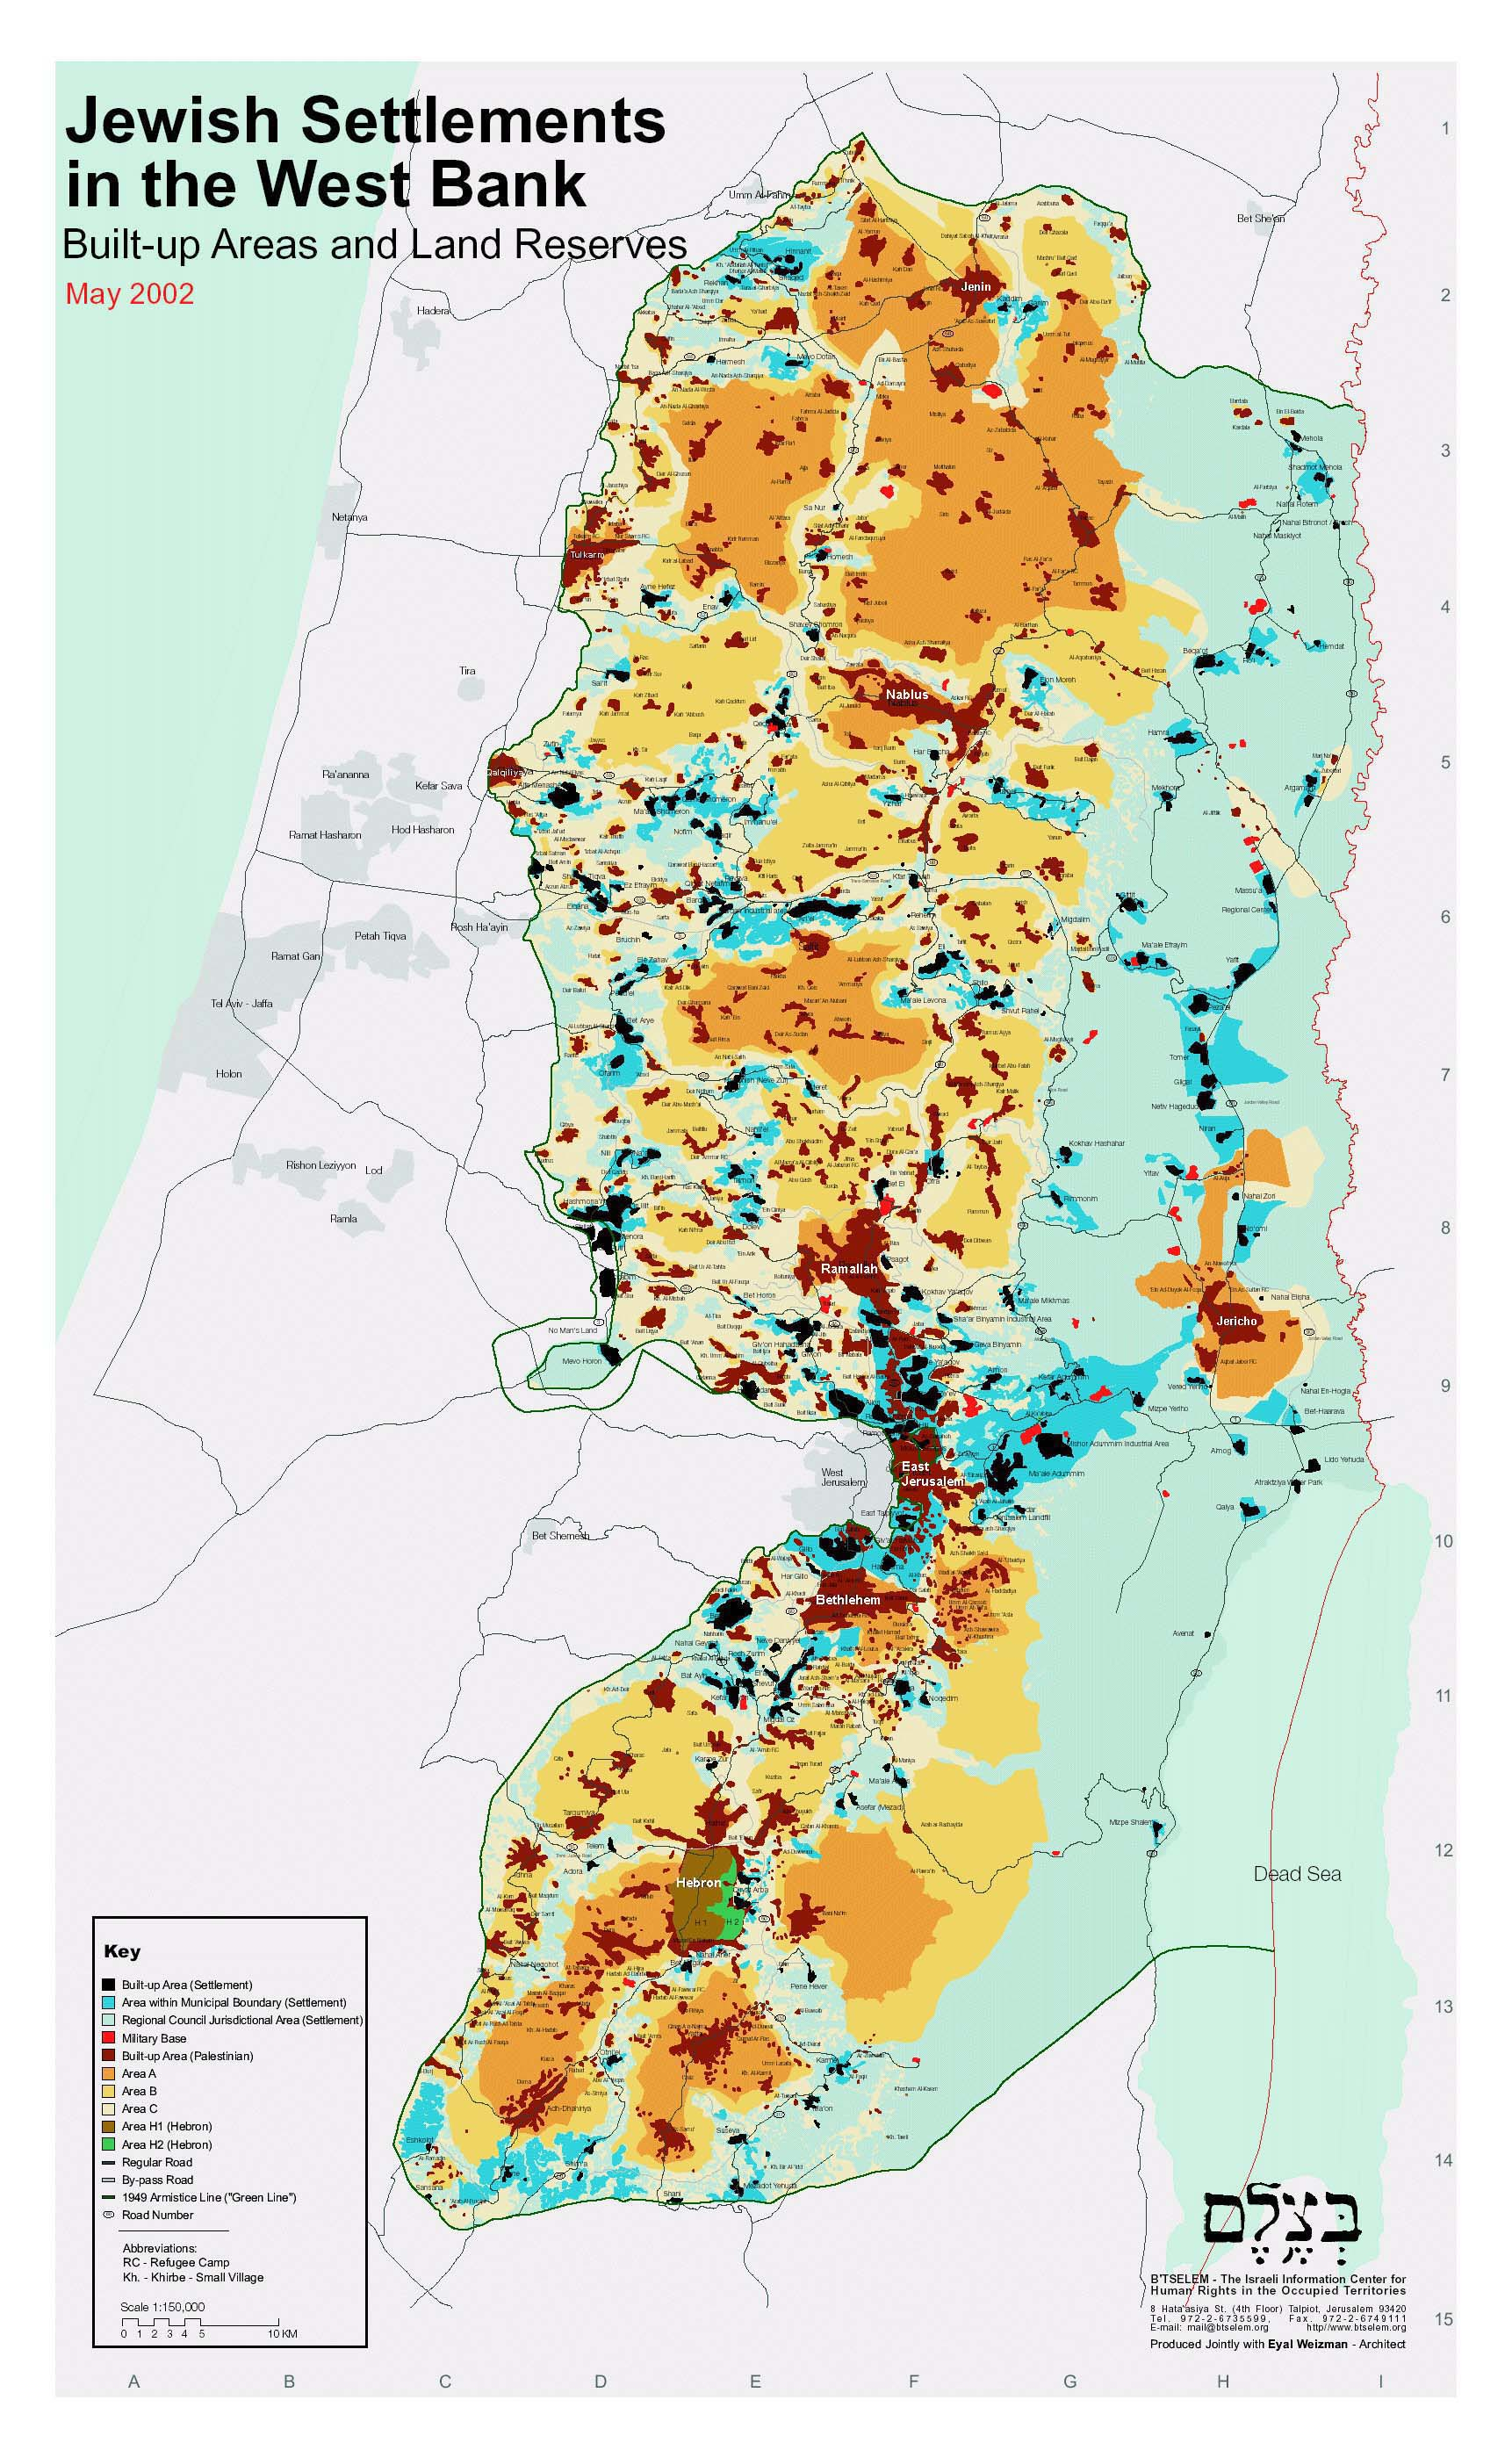 Jewish-Settlements-in-West-Bank-Map.jpg